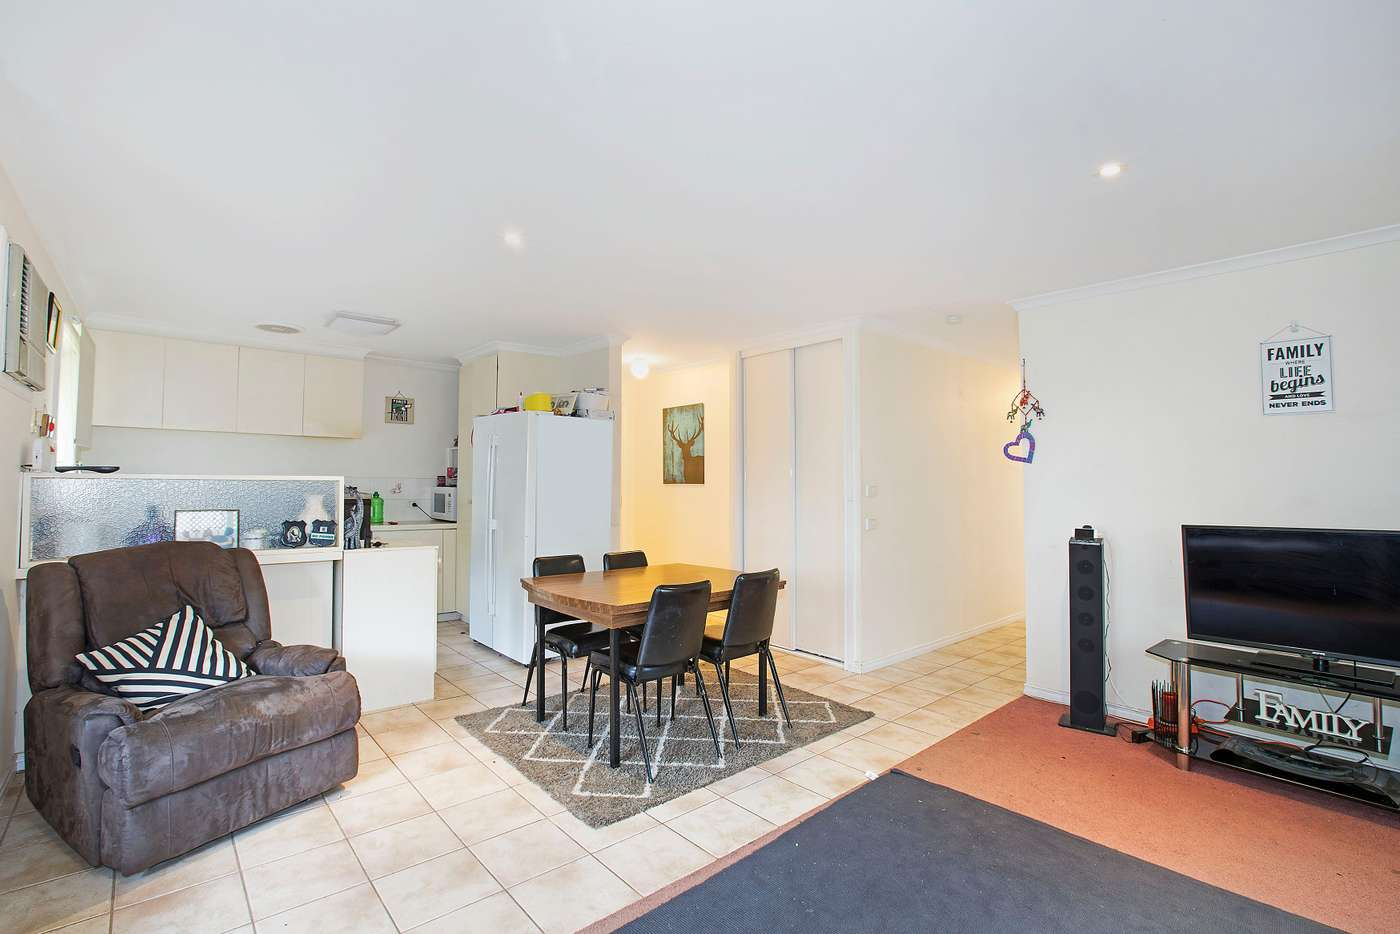 Sixth view of Homely house listing, Room 5/91 Fogarty Avenue, Highton VIC 3216